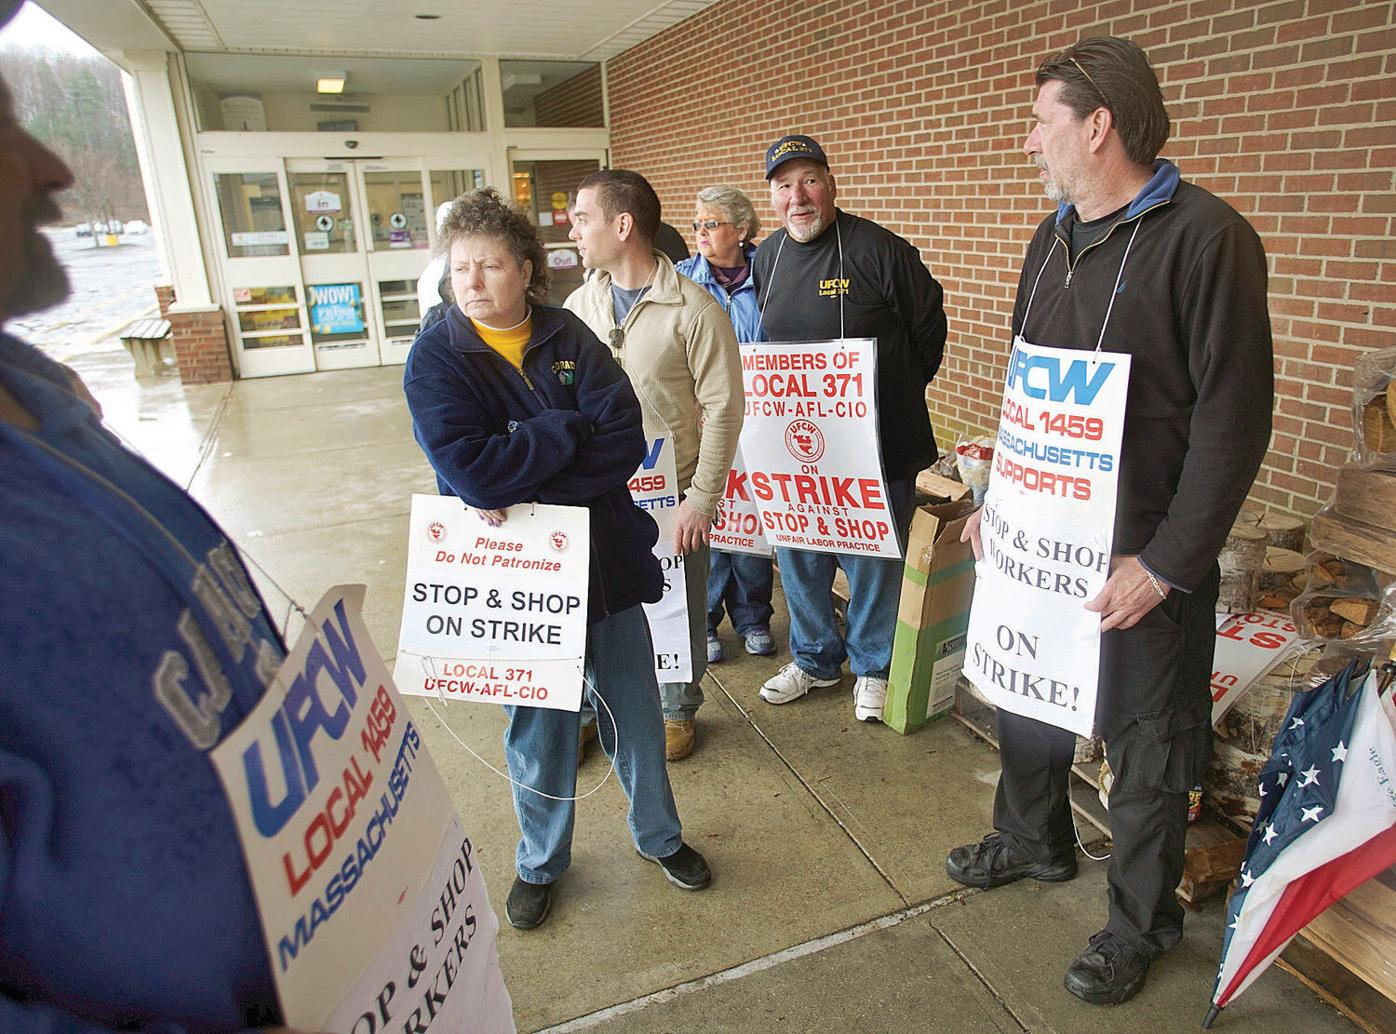 Talks resume as Stop & Shop strike enters 5th day